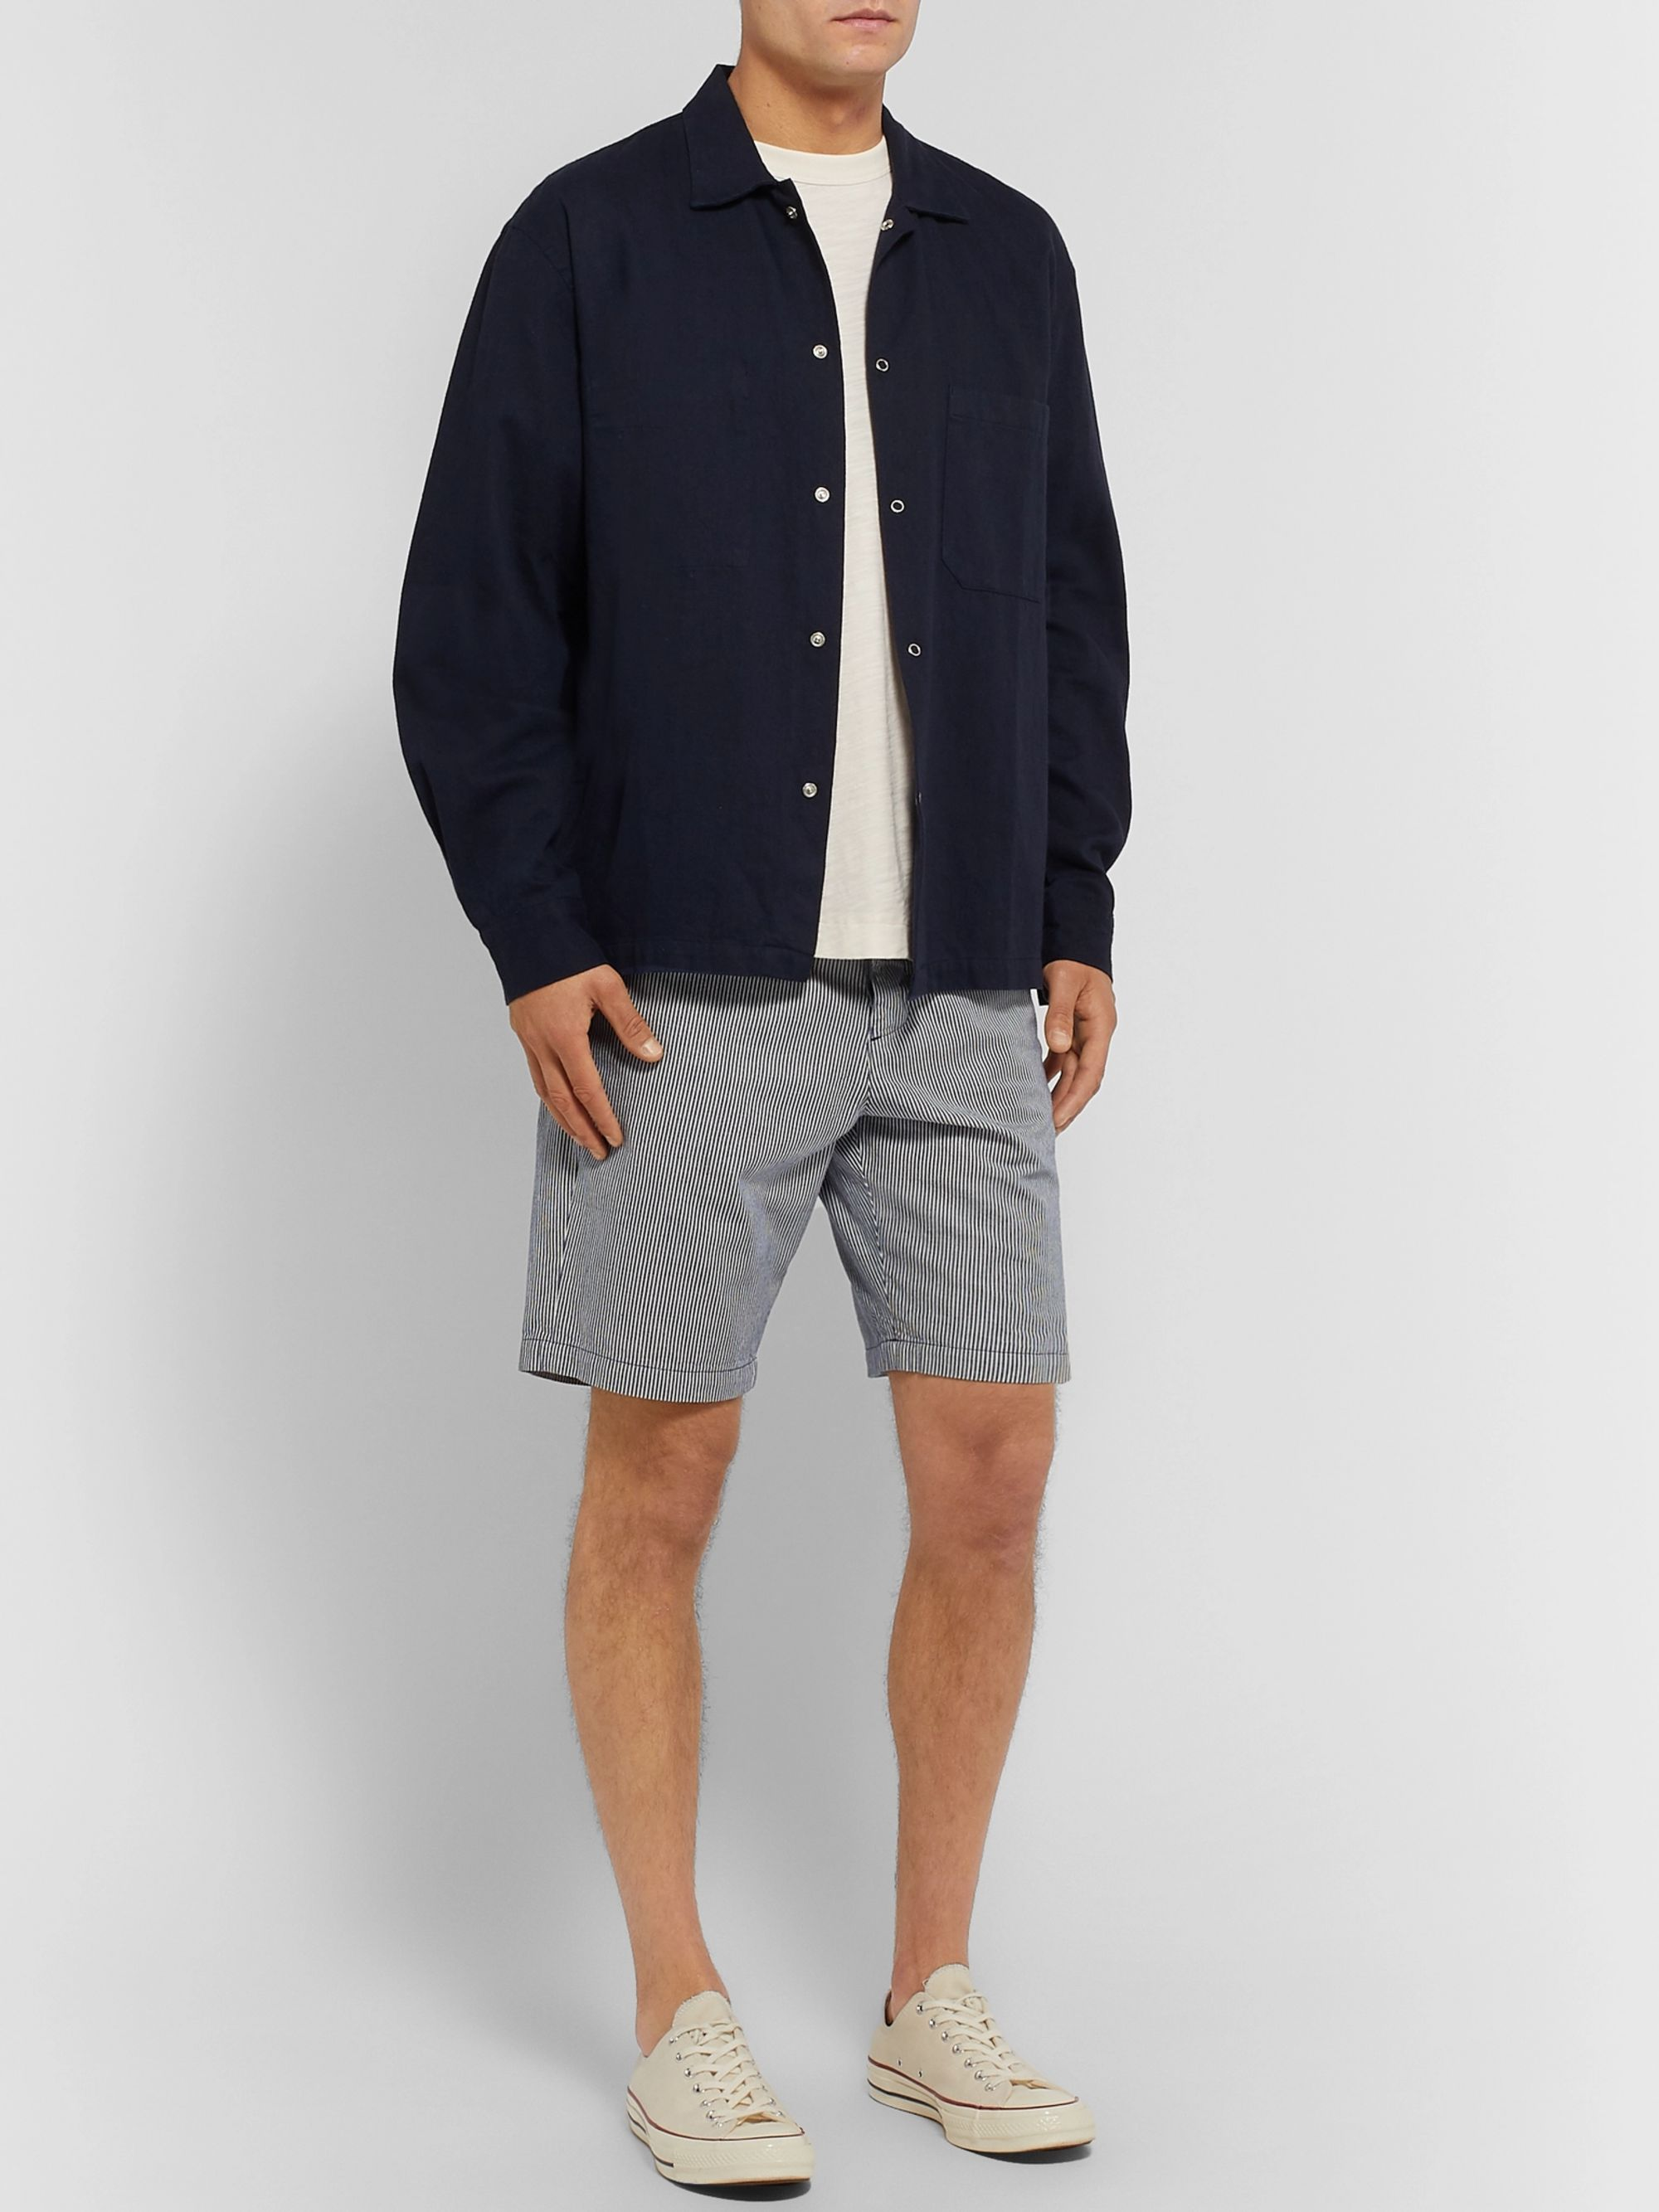 Oliver Spencer Striped Organic Cotton Shorts